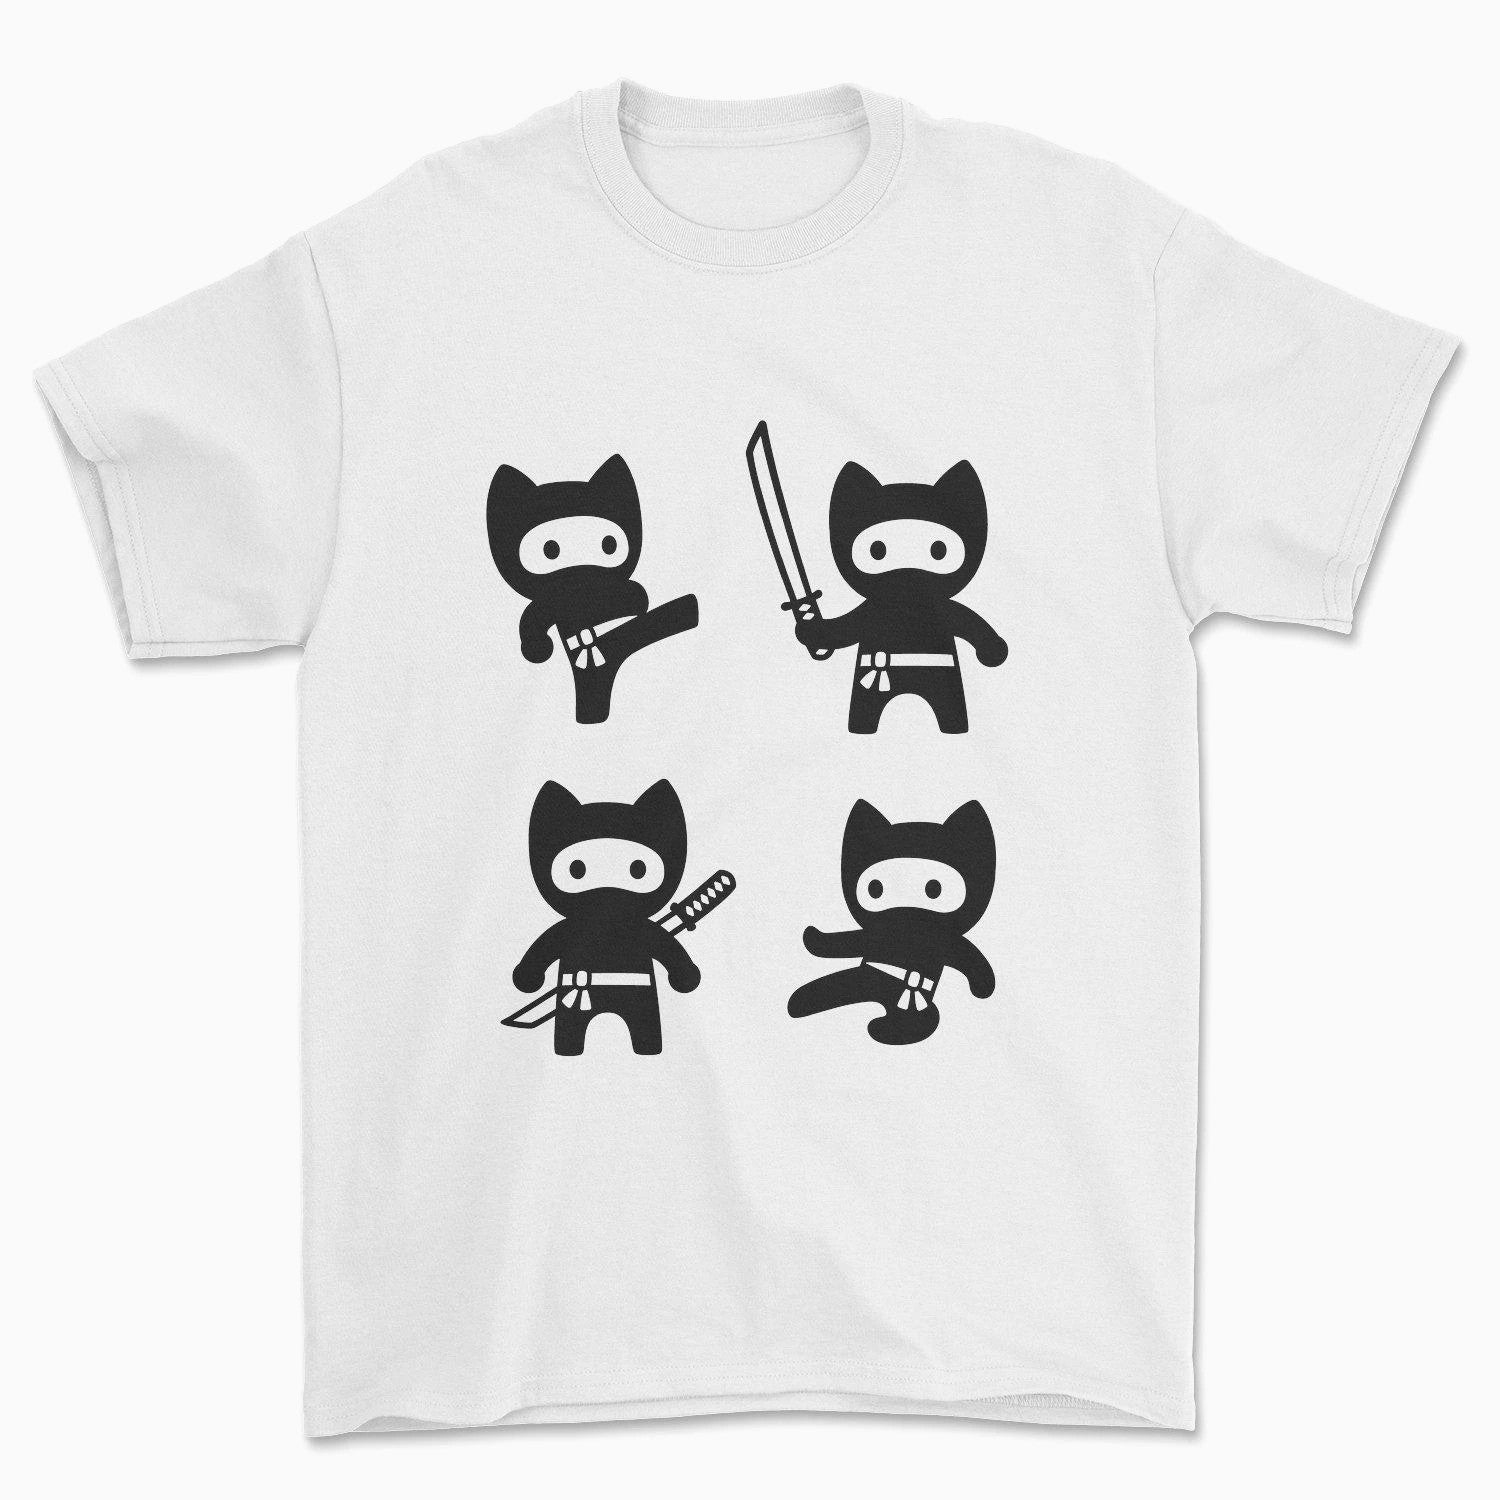 Ninja Cats T-Shirt - Pawsome Couture